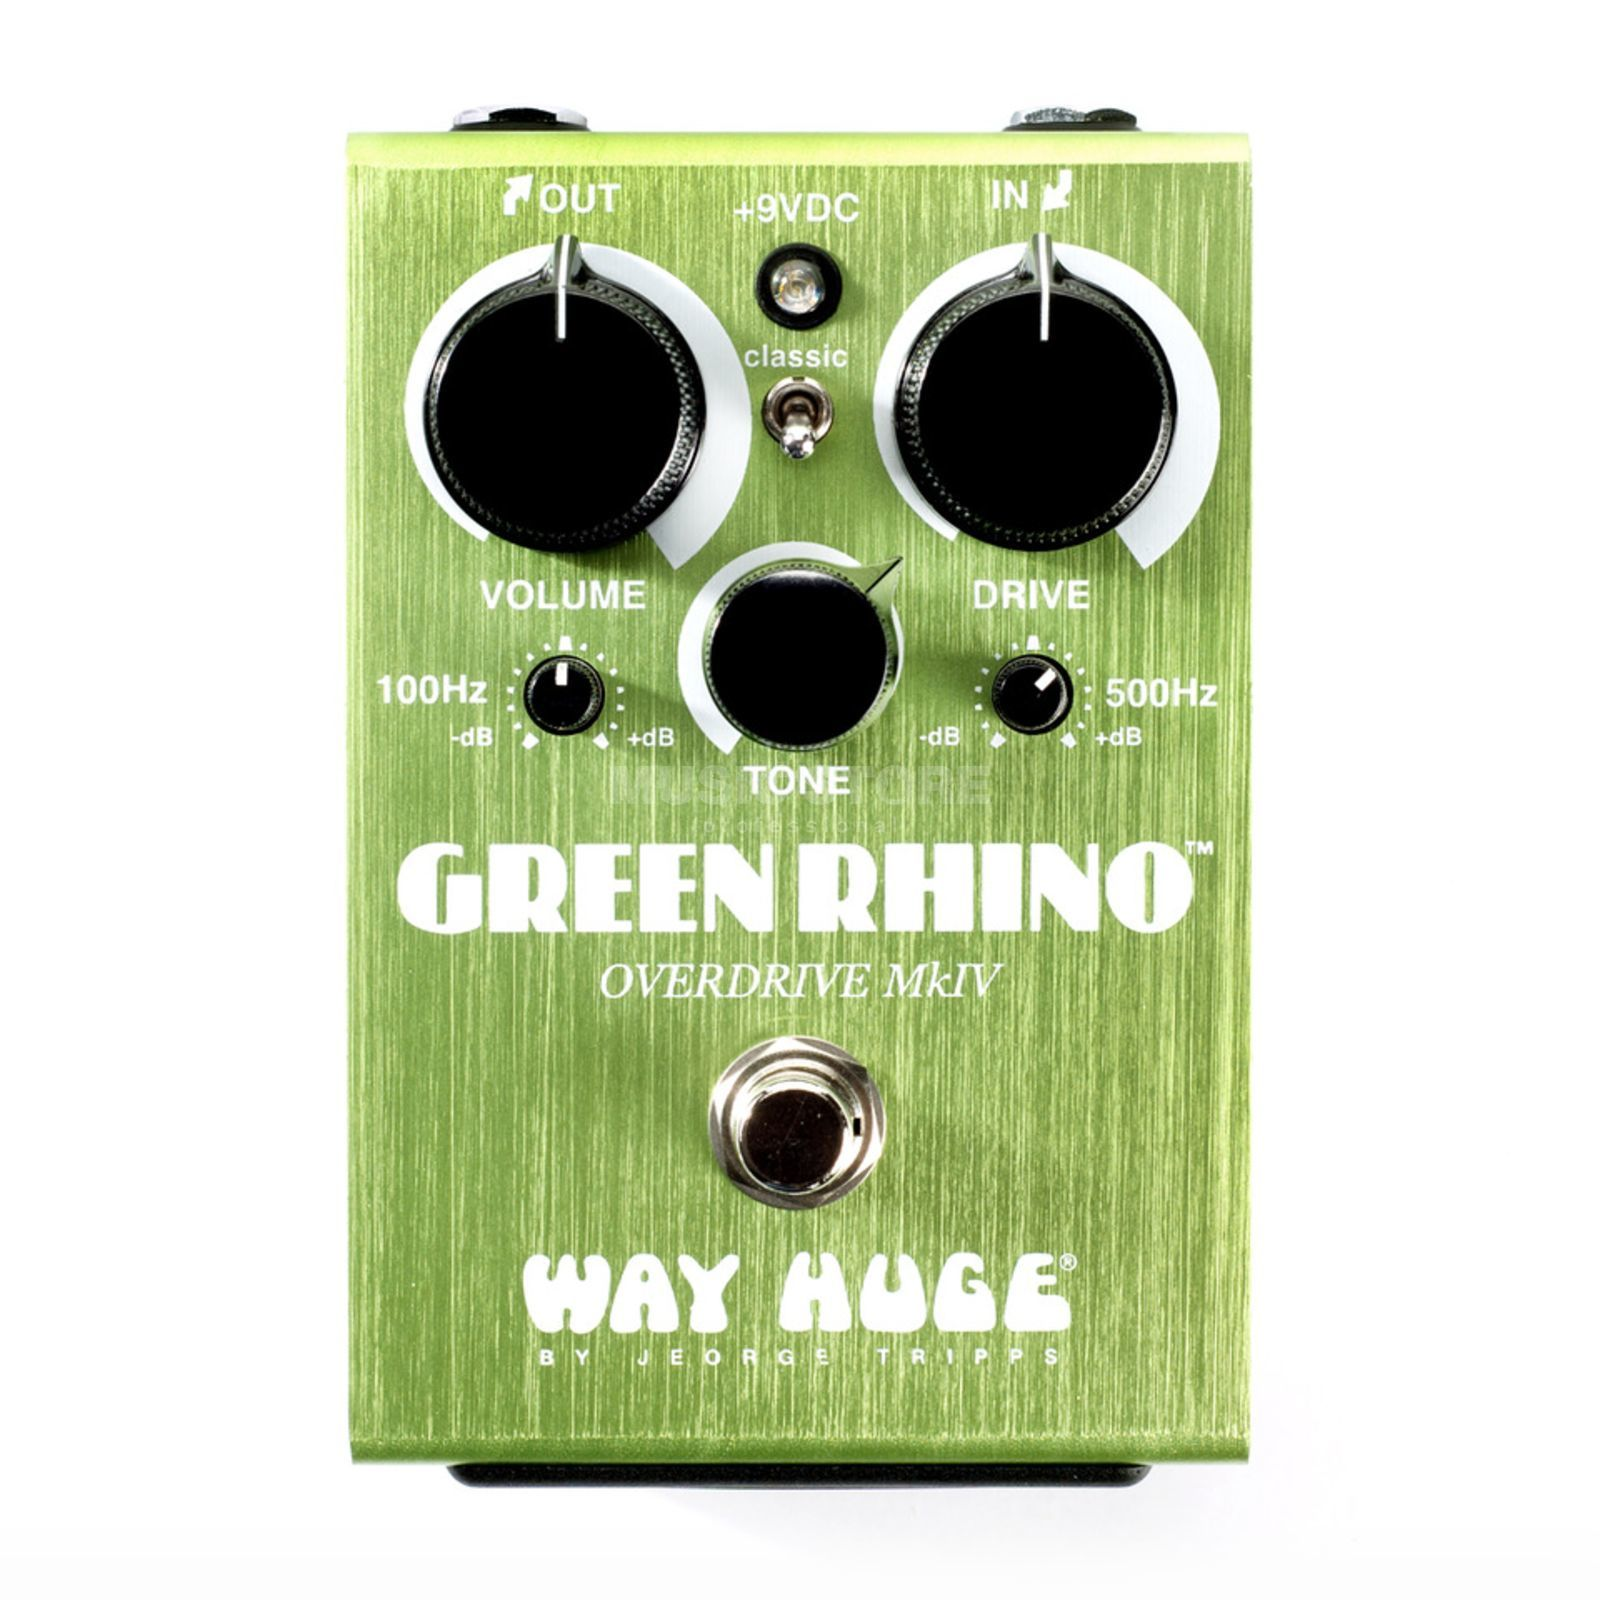 Way Huge Green Rhino MK IV Overdrive Produktbillede